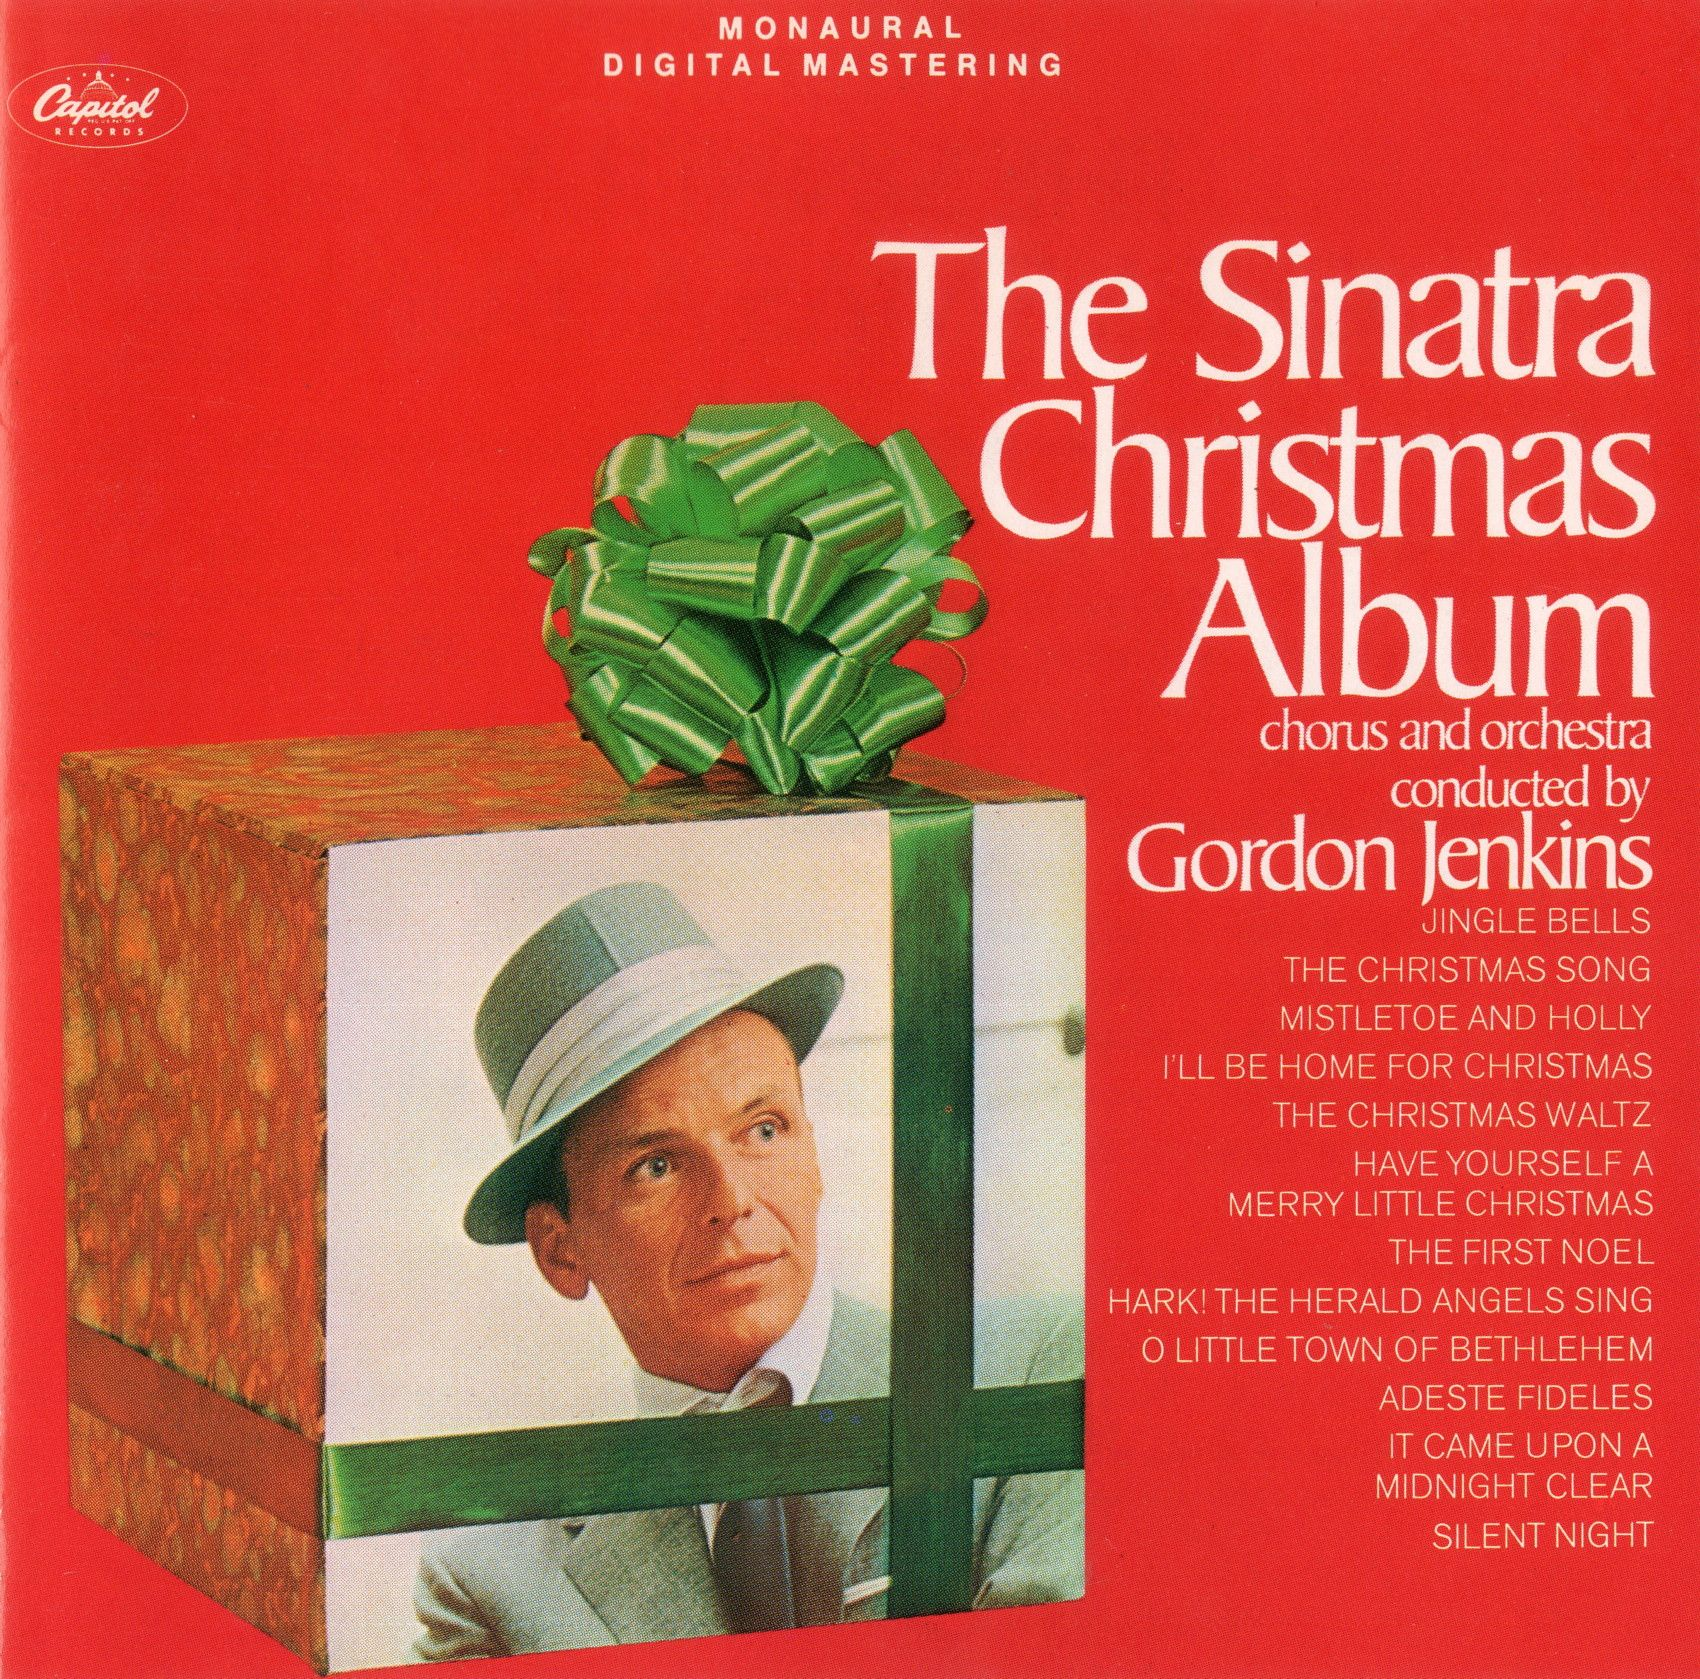 frank sinatra the sinatra christmas album 1957 this cover and title were from the 1963 lp reissue this capitol recording conducted by gordon jenkins